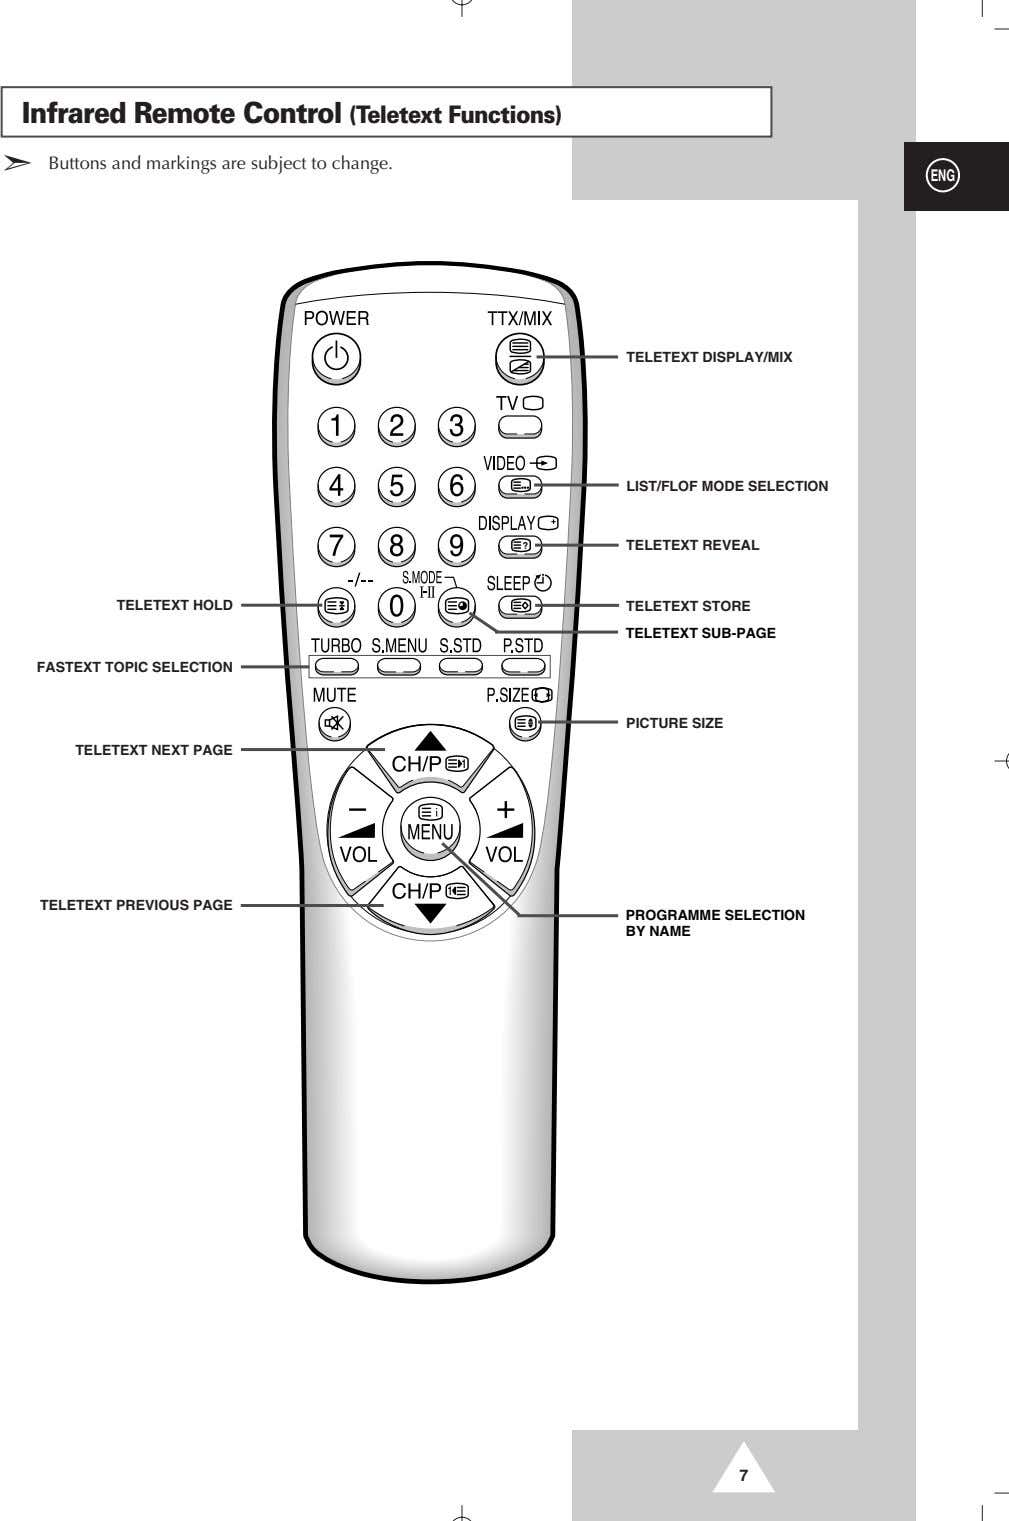 Infrared Remote Control (Teletext Functions) ➣ Buttons and markings are subject to change. ENG TELETEXT